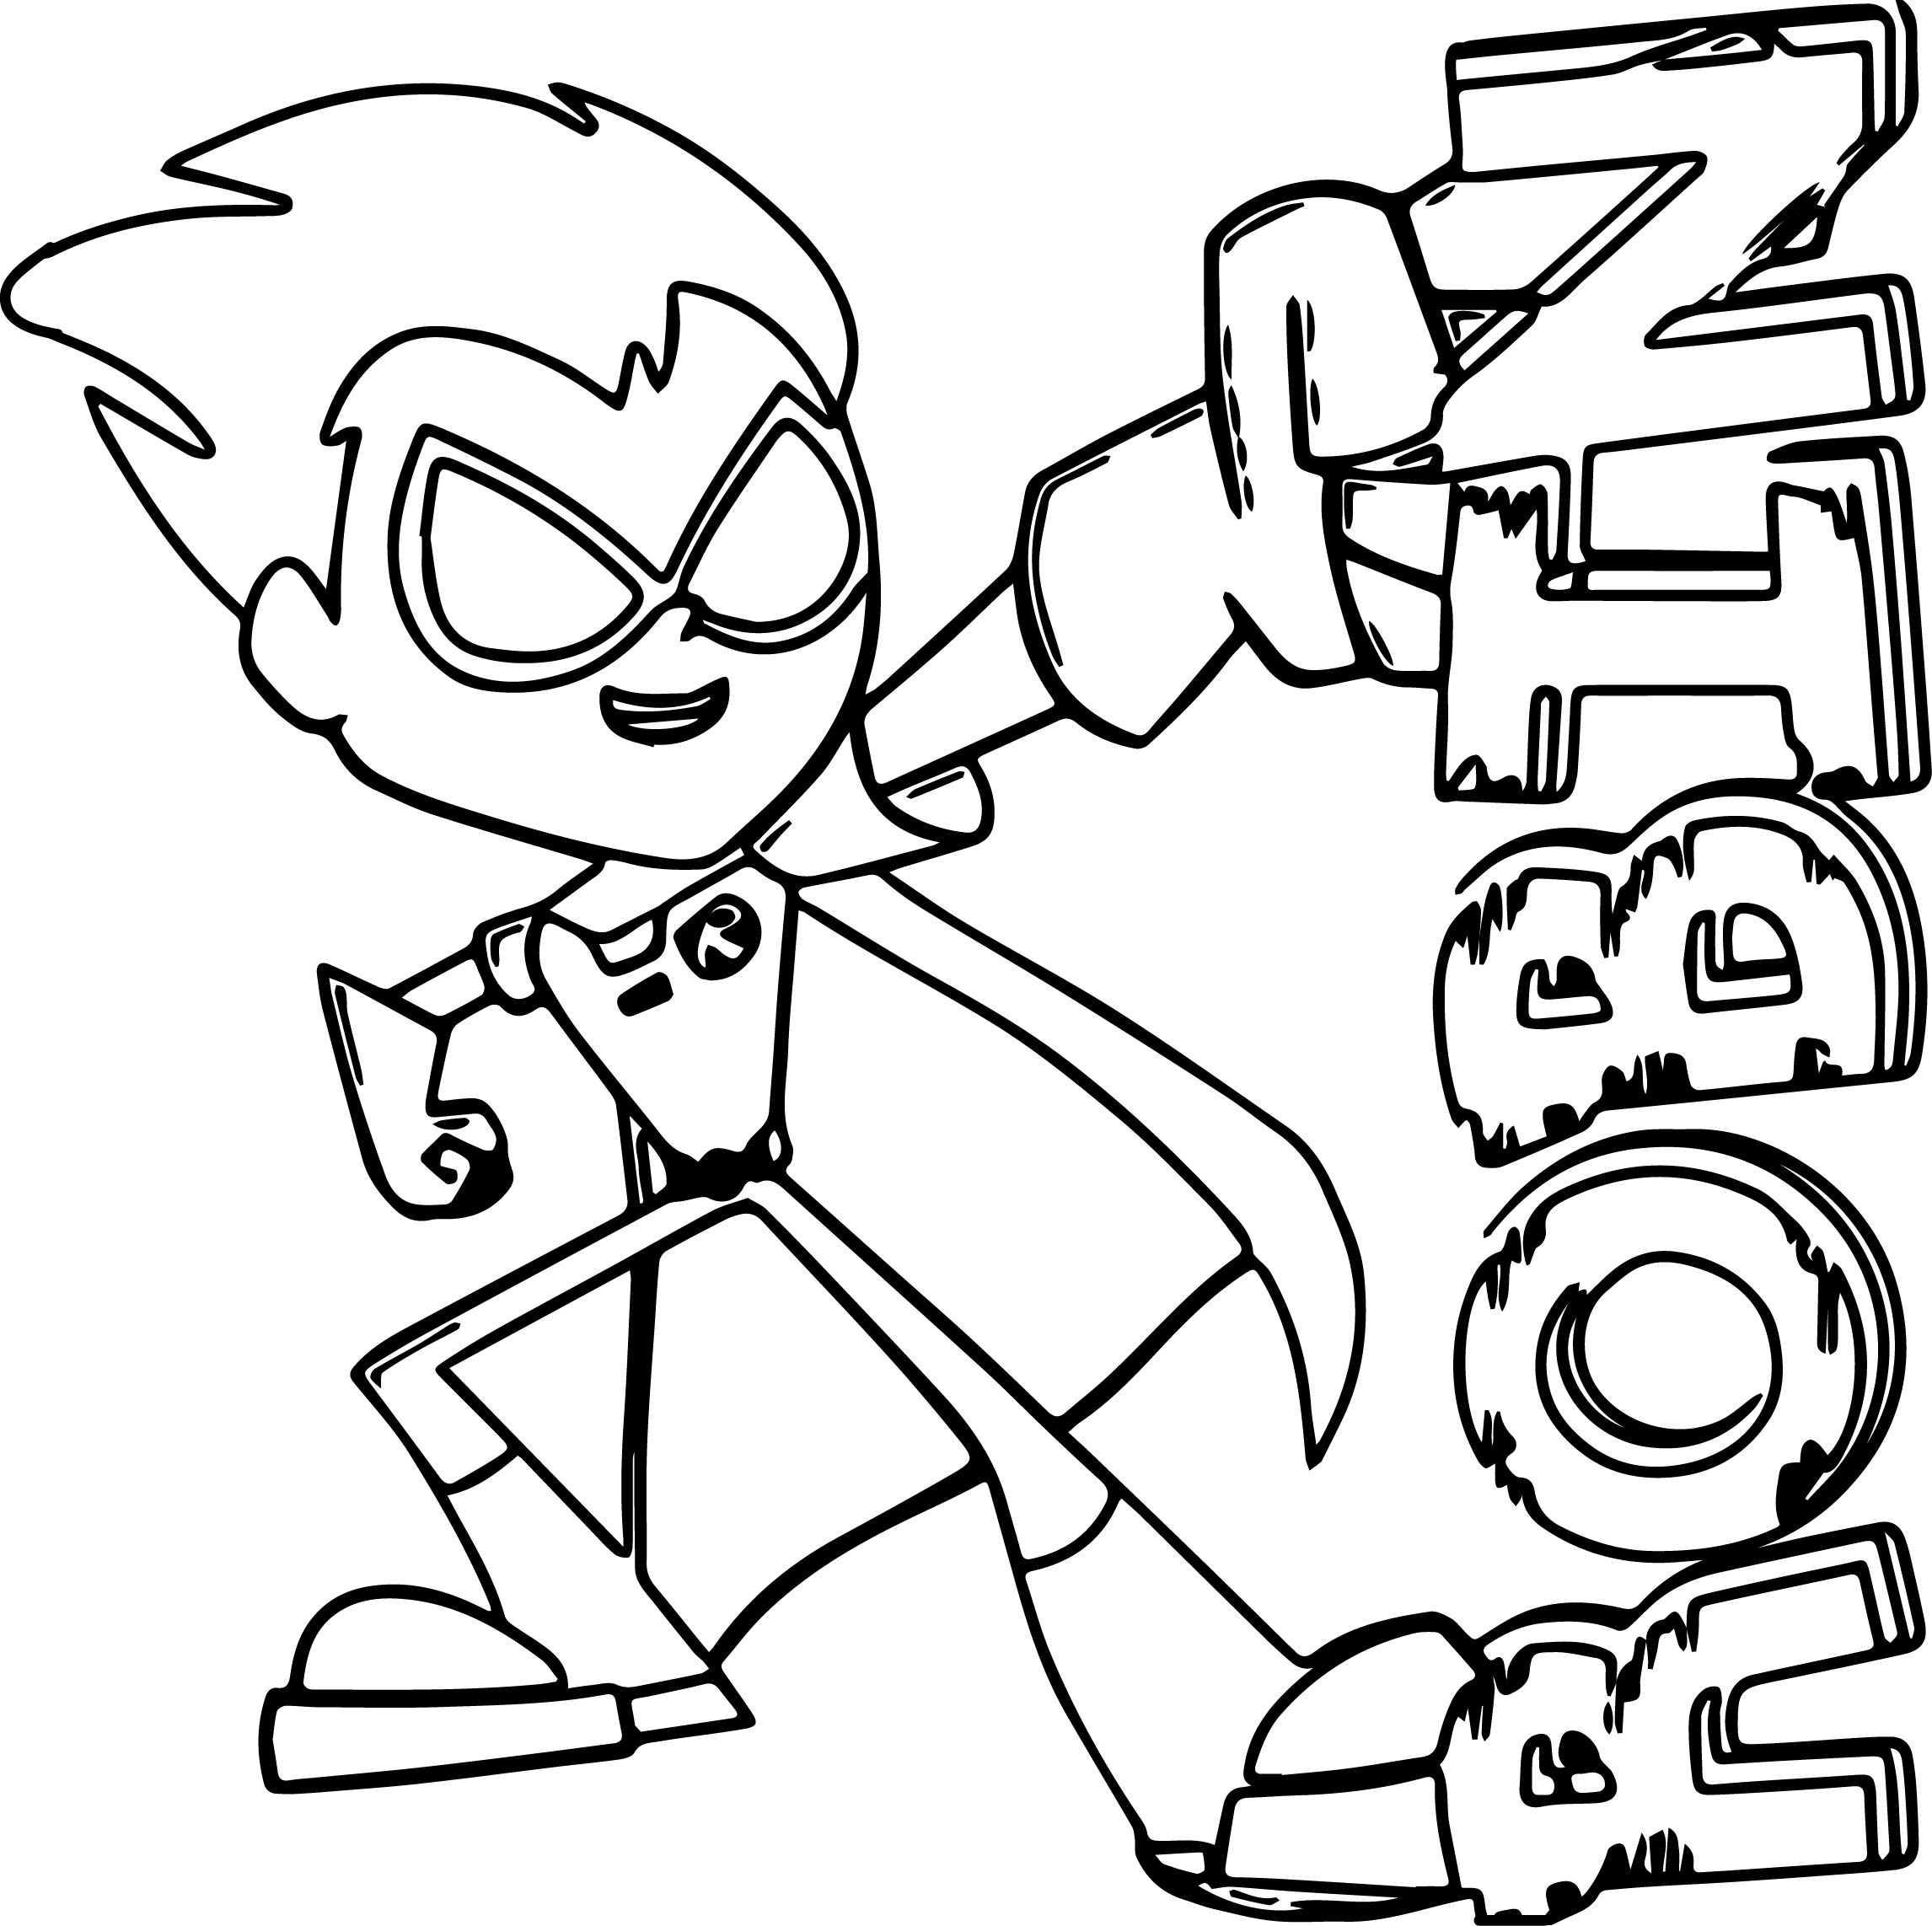 teen titans coloring pages teen titans coloring pages best coloring pages for kids pages coloring titans teen